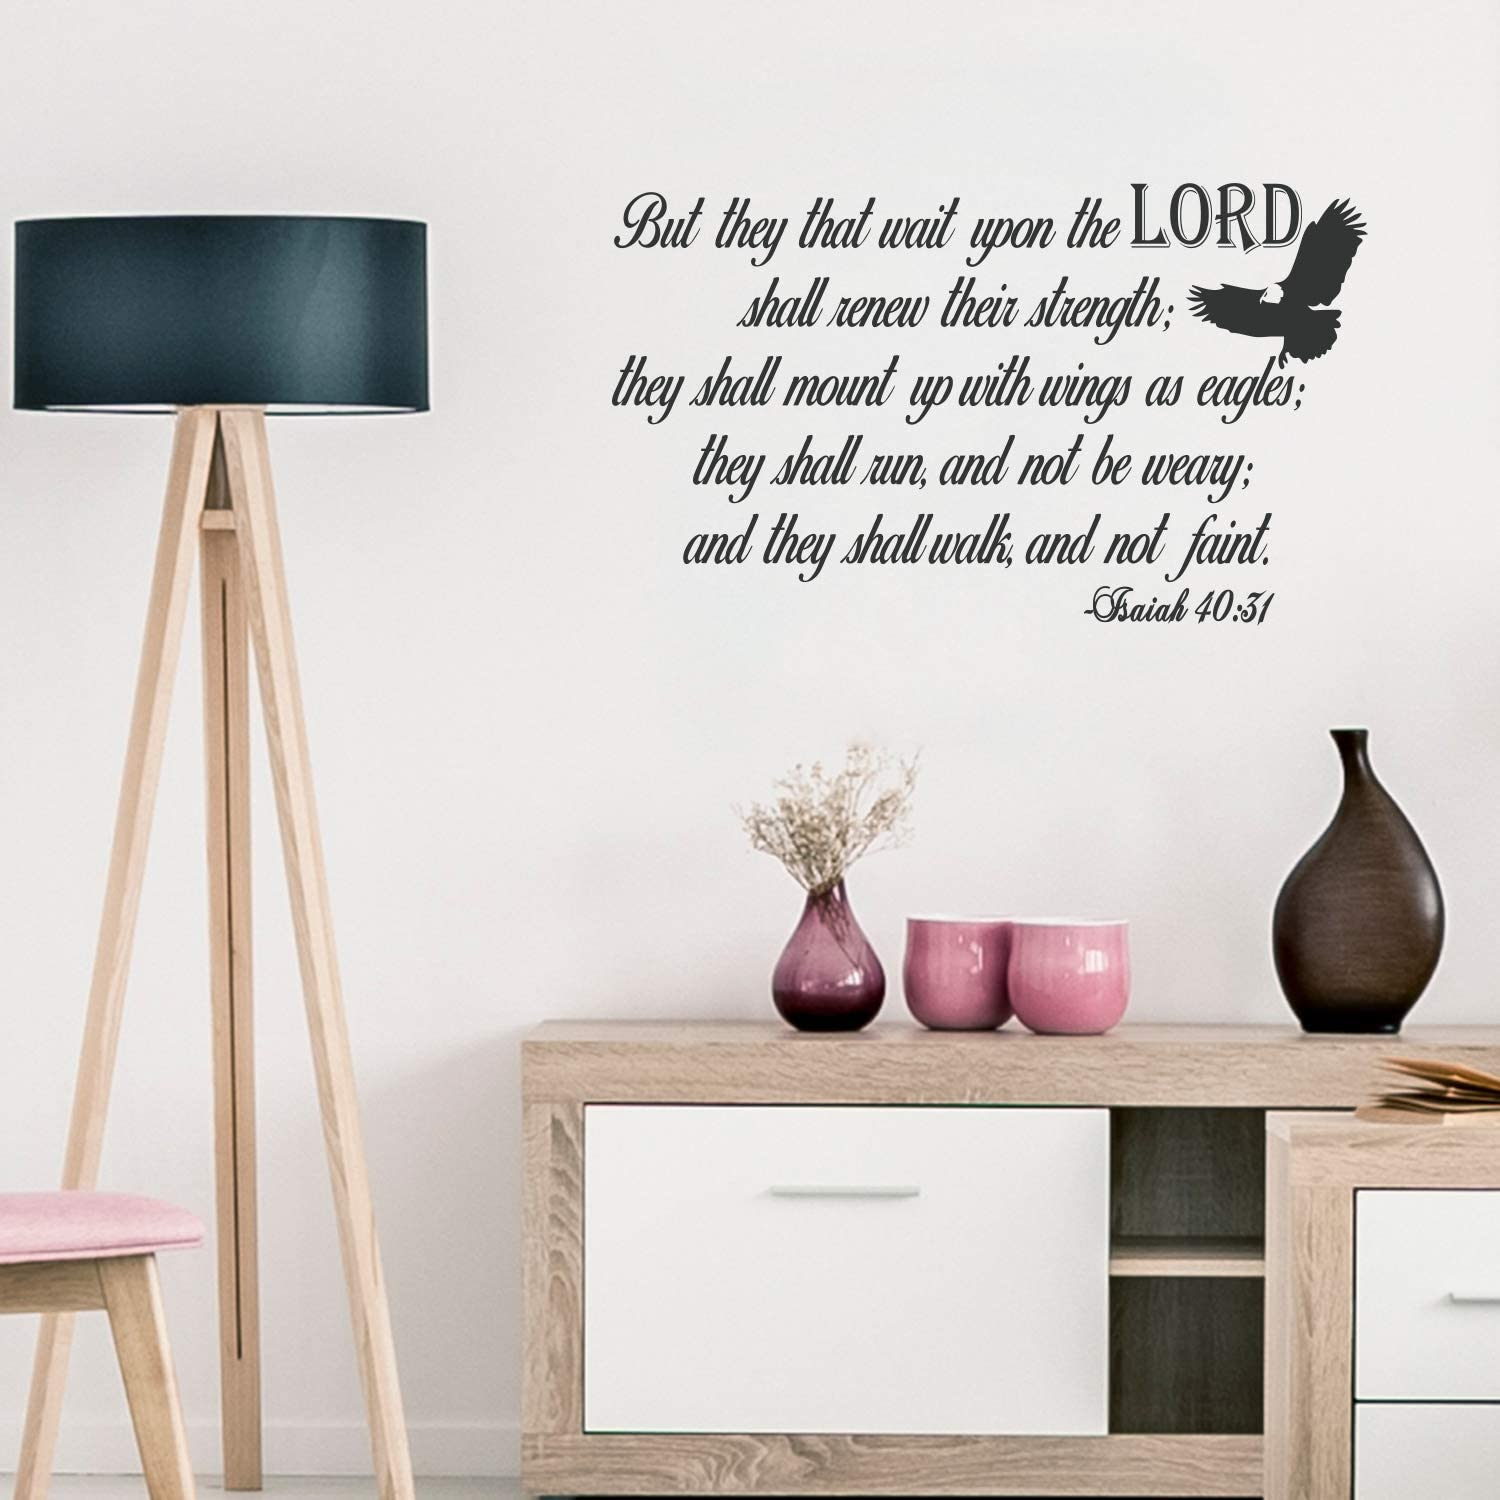 """Vinyl Wall Art Decal - Isaiah 40:31-17.5"""" x 30"""" - Religious Bible Verse Quote Sticker for Bedroom Living Room Kids Room Office Church Decor"""